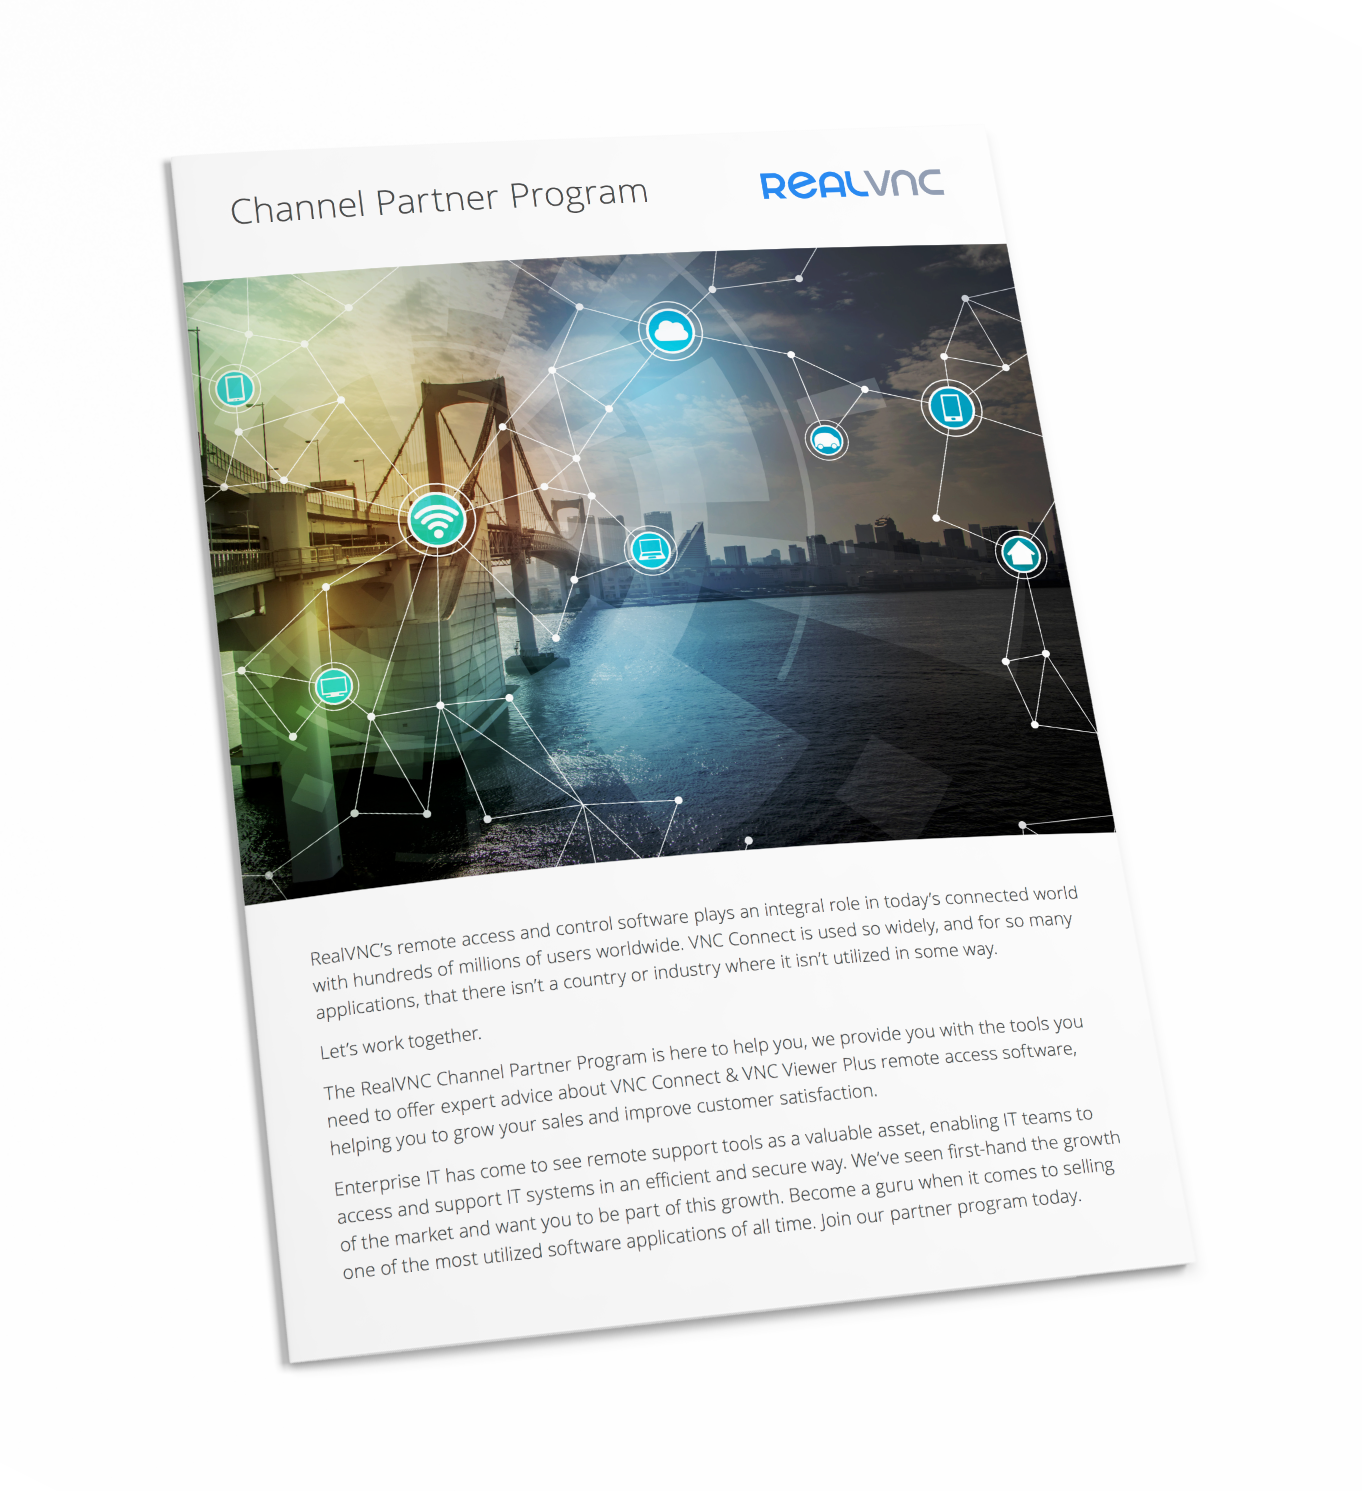 Channel Partner Program